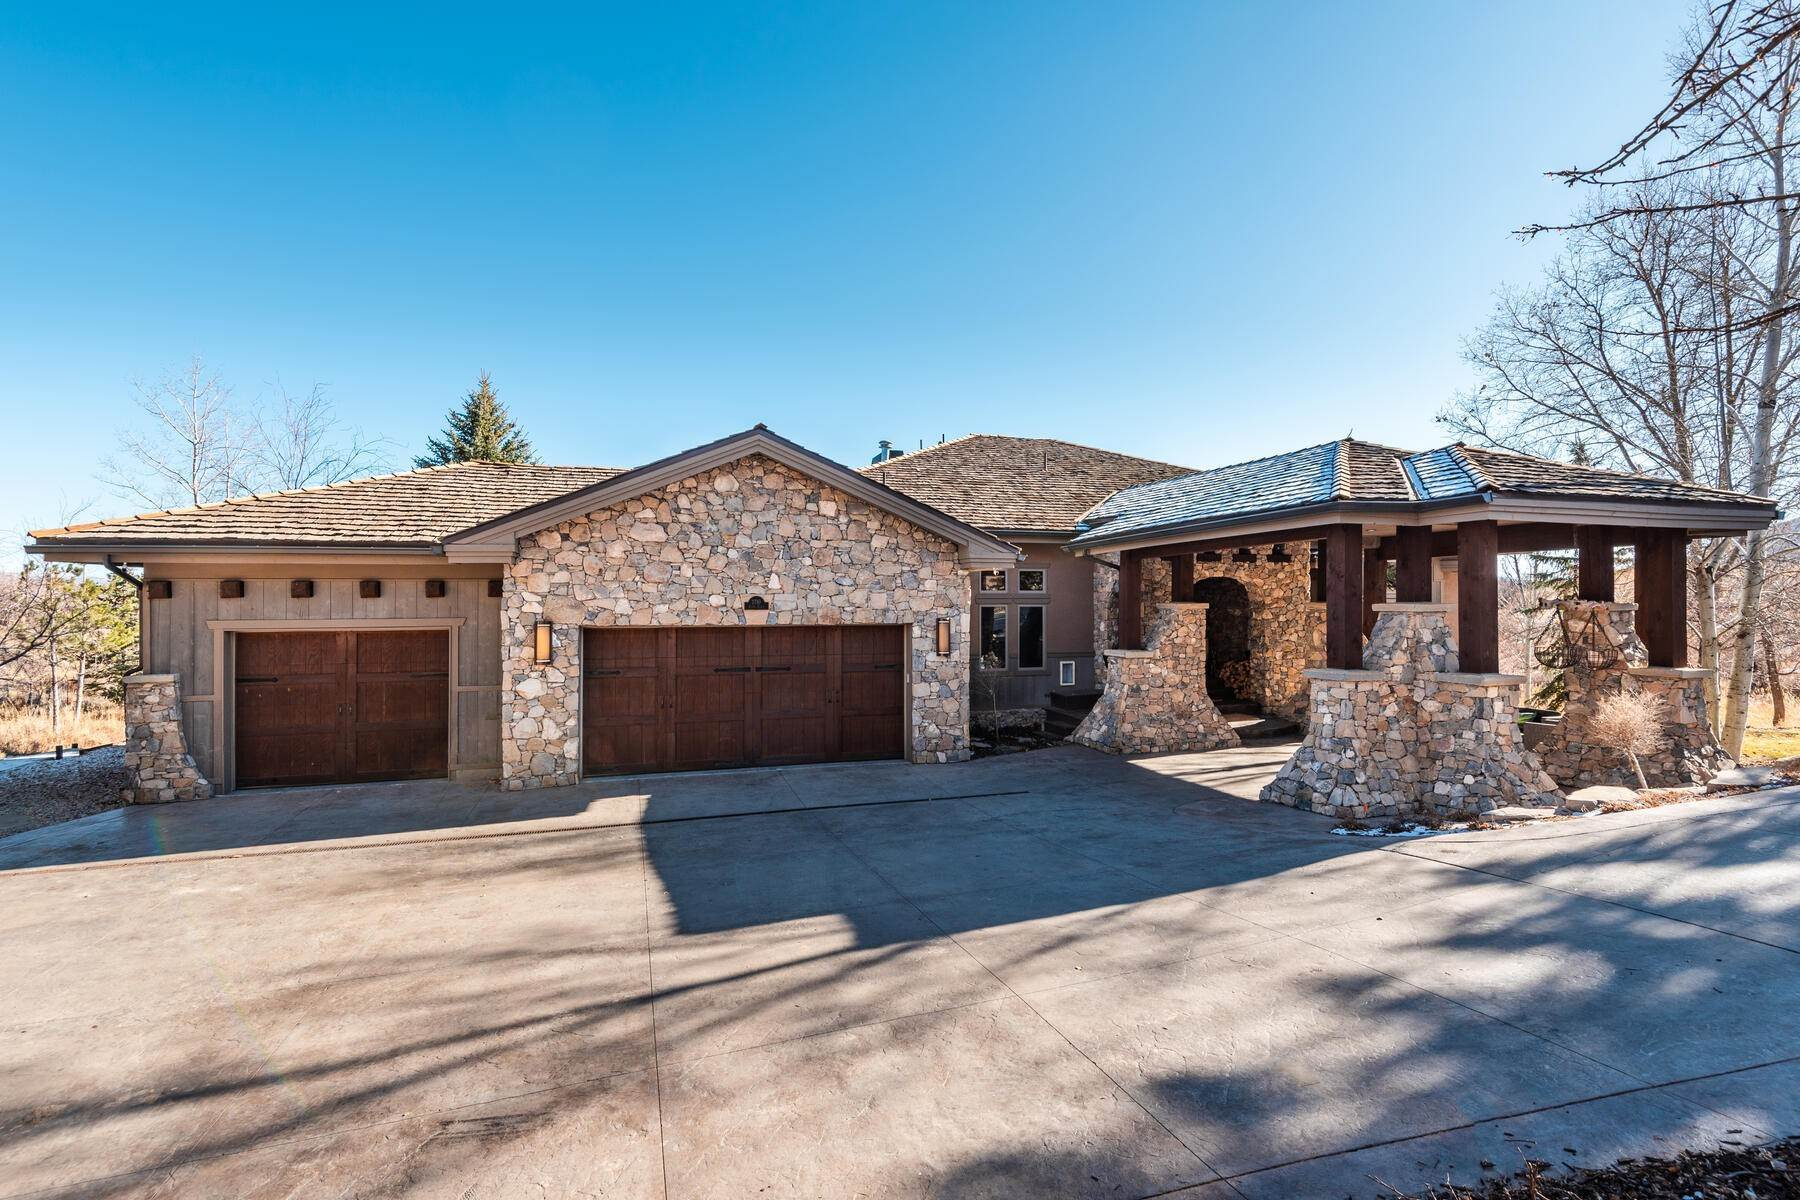 Single Family Homes for Sale at Updated Home in Park Meadows Has It All! 2710 Silver Cloud Dr Park City, Utah 84060 United States